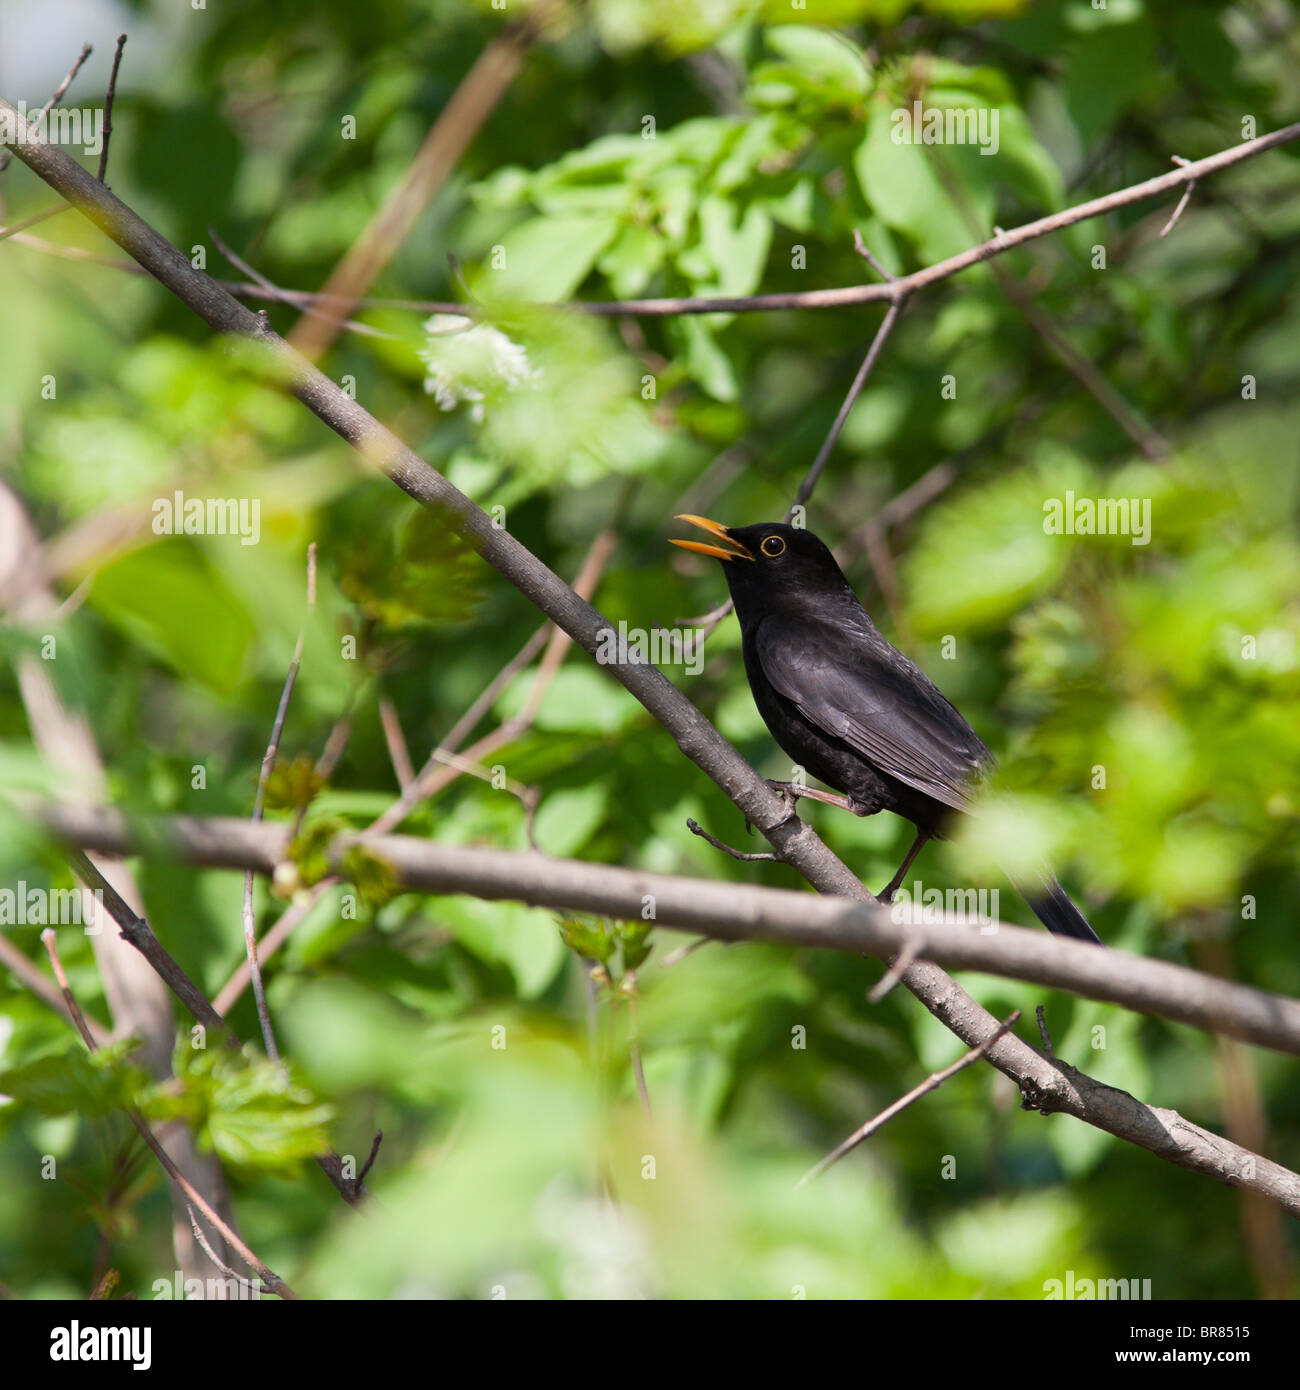 The Male Of A Blackbird Sings A Spring Song. A Voice Of A Bird Pictures